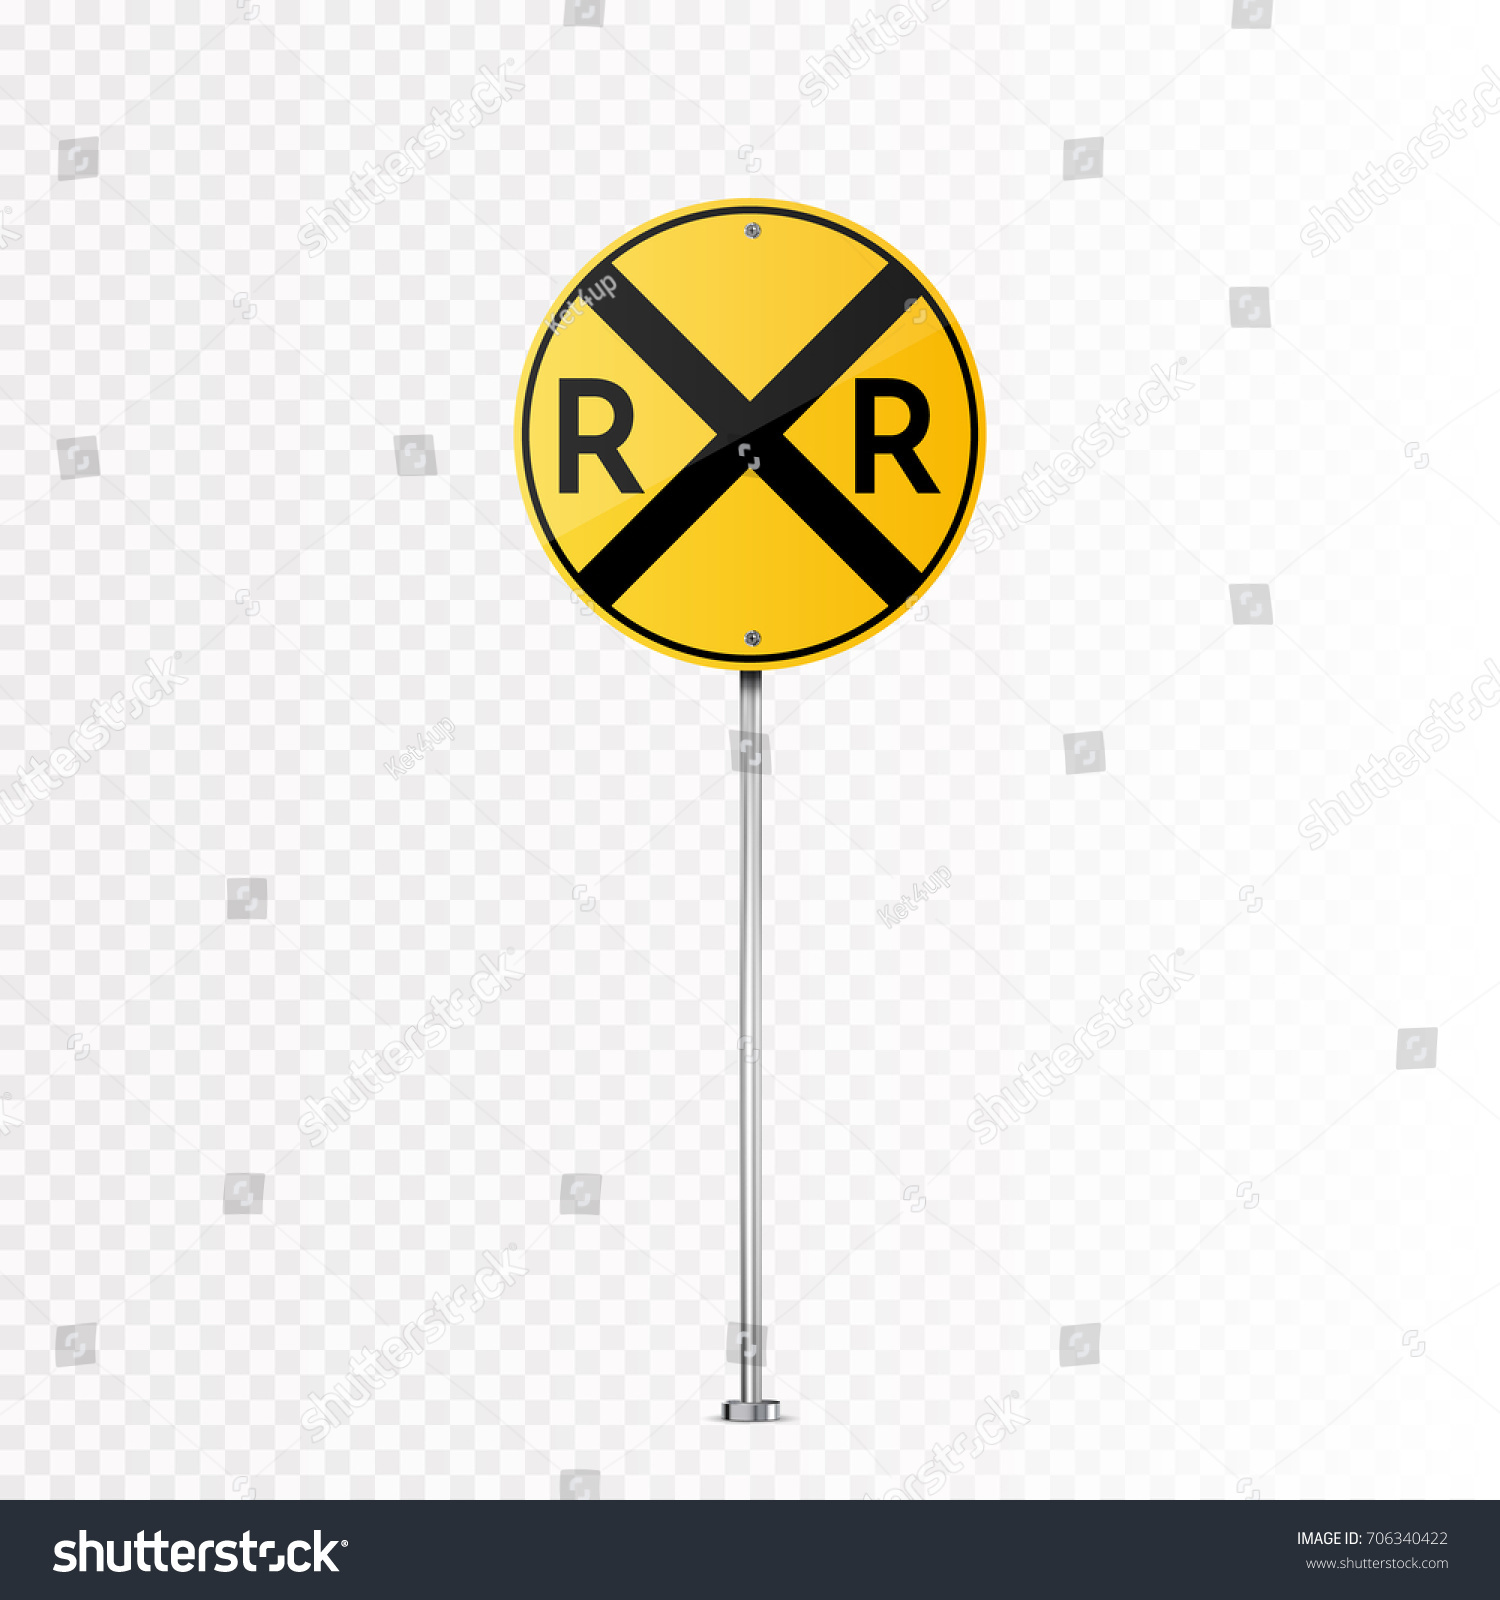 Railroad Vector Crossing Traffic Sign Isolated Stock Photo (Photo ...